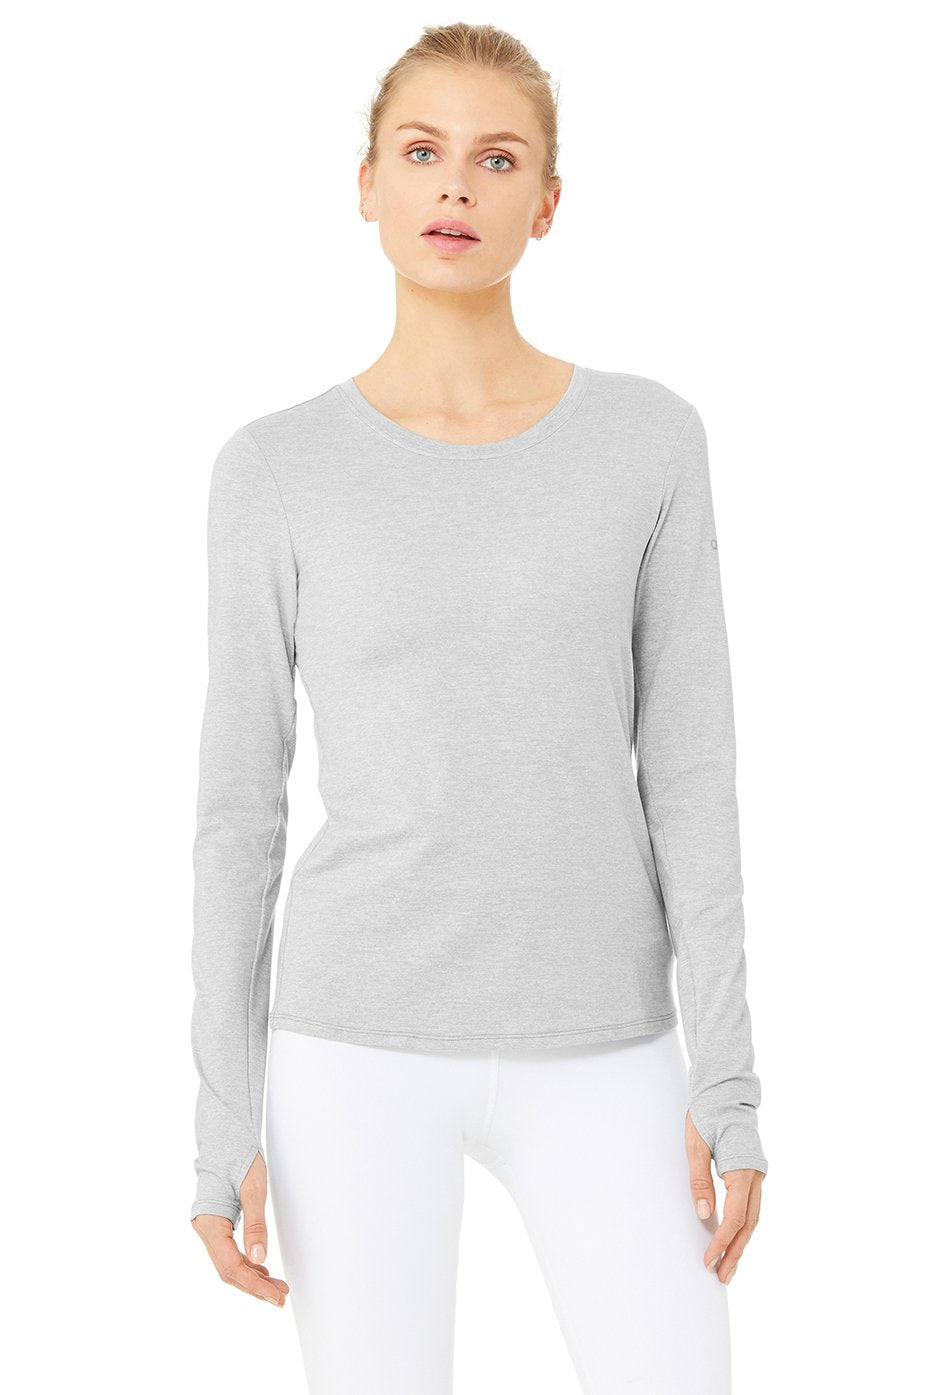 Alo Yoga Finesse Long Sleeve Top ~ Zinc Heather